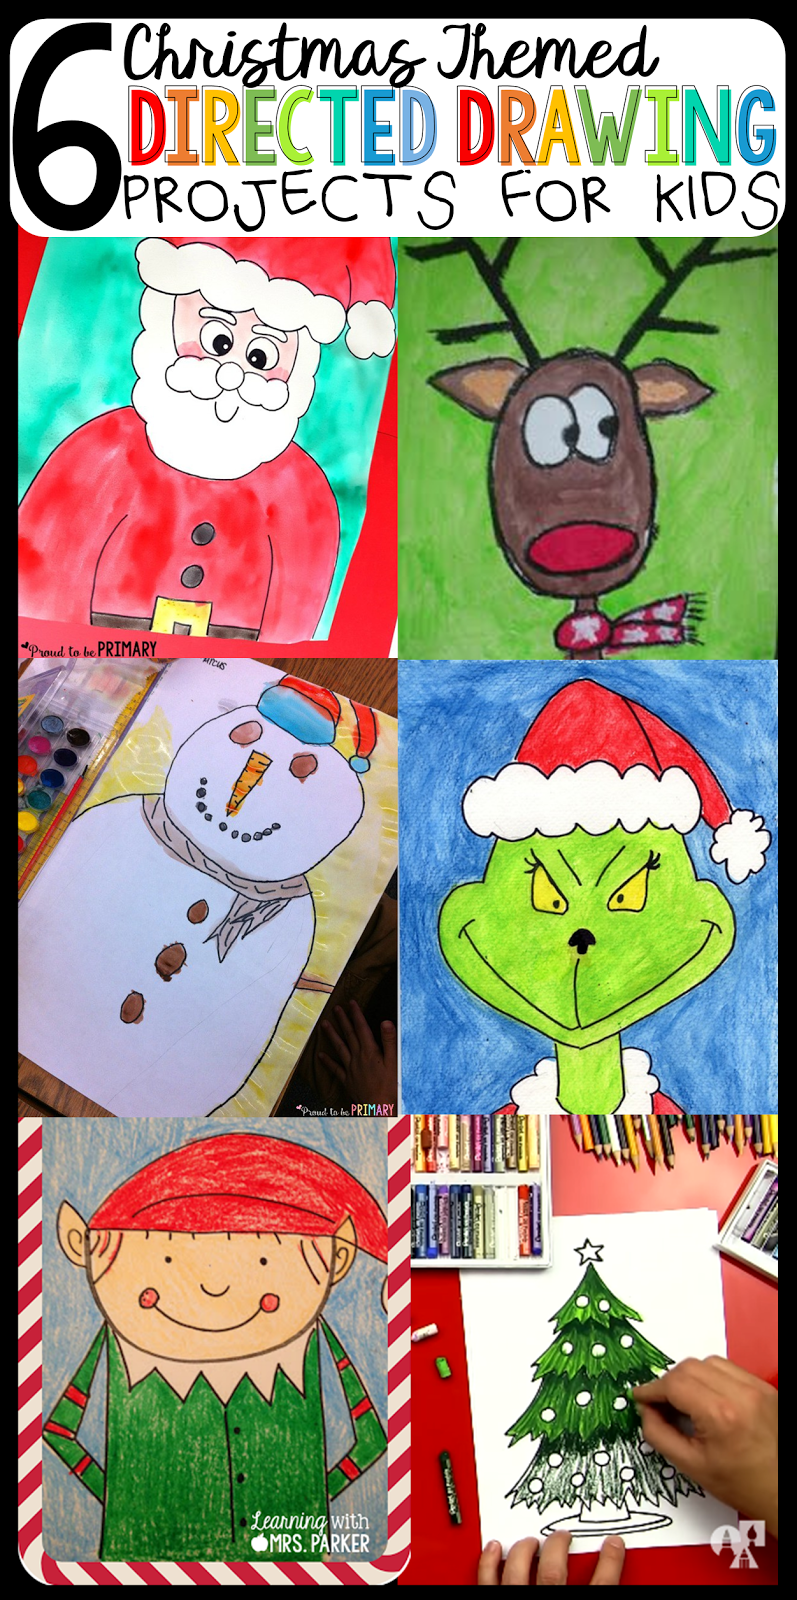 6 Christmas Themed Directing Drawing Projects for Kids | Christmas ...